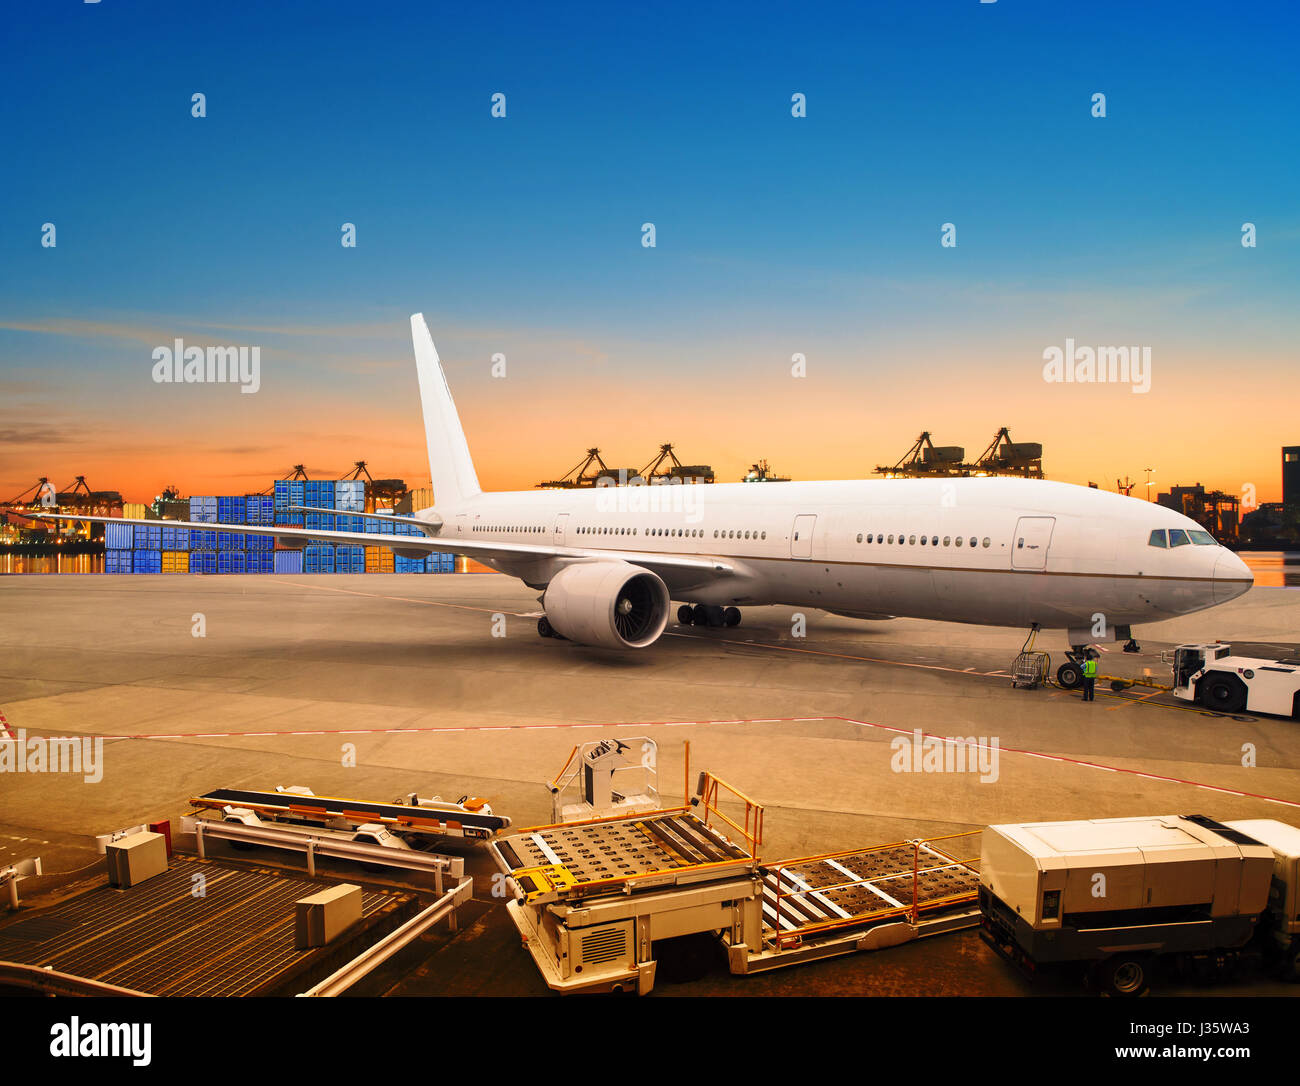 Cargo Plane Loading Stock Photos Amp Cargo Plane Loading